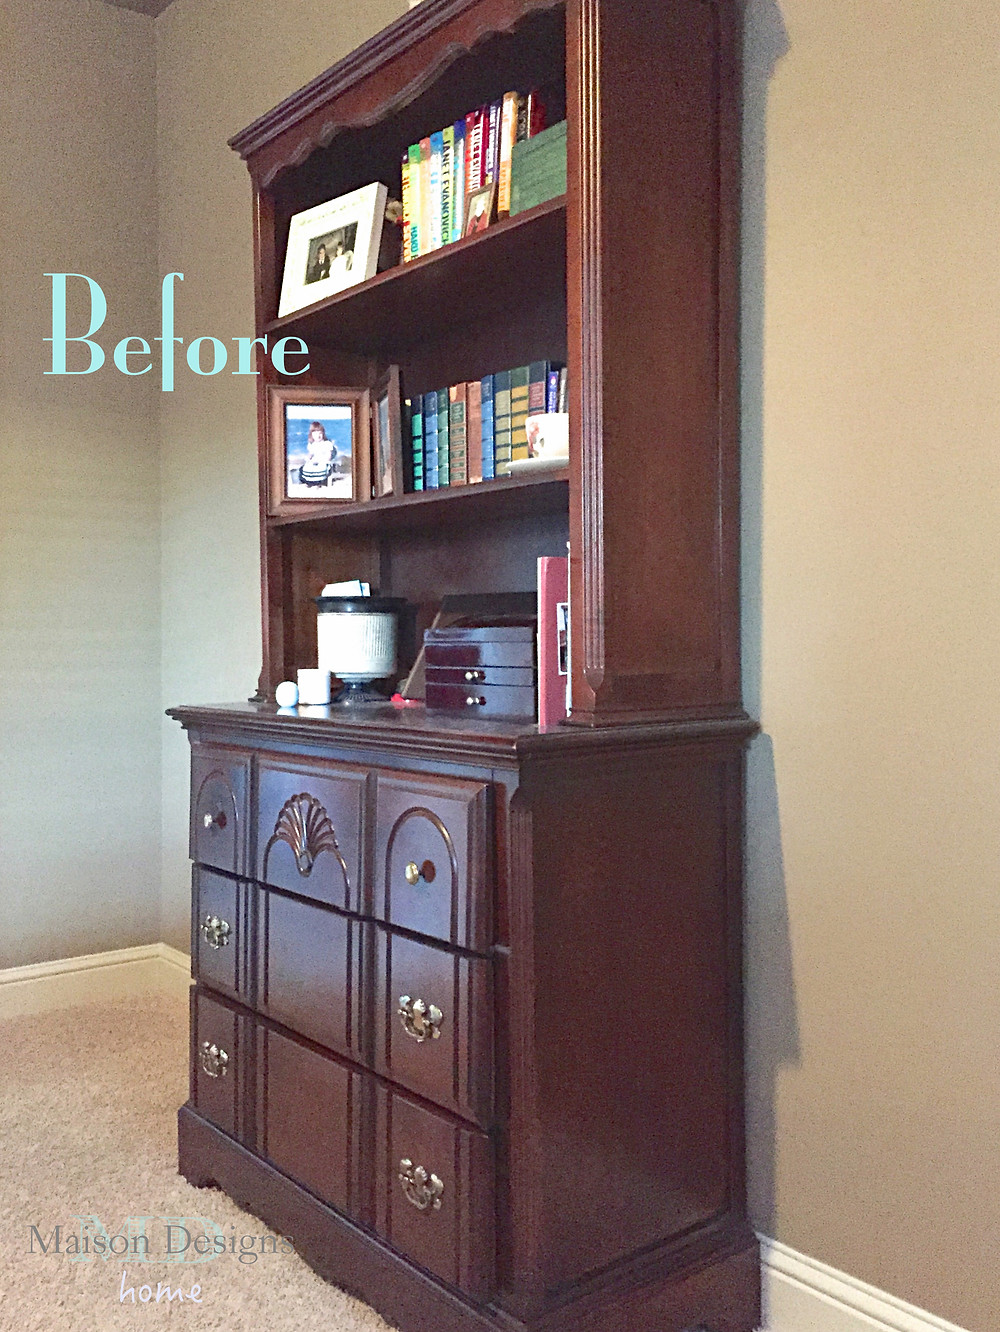 Before & After Furniture Makeover - Maison Designs Home